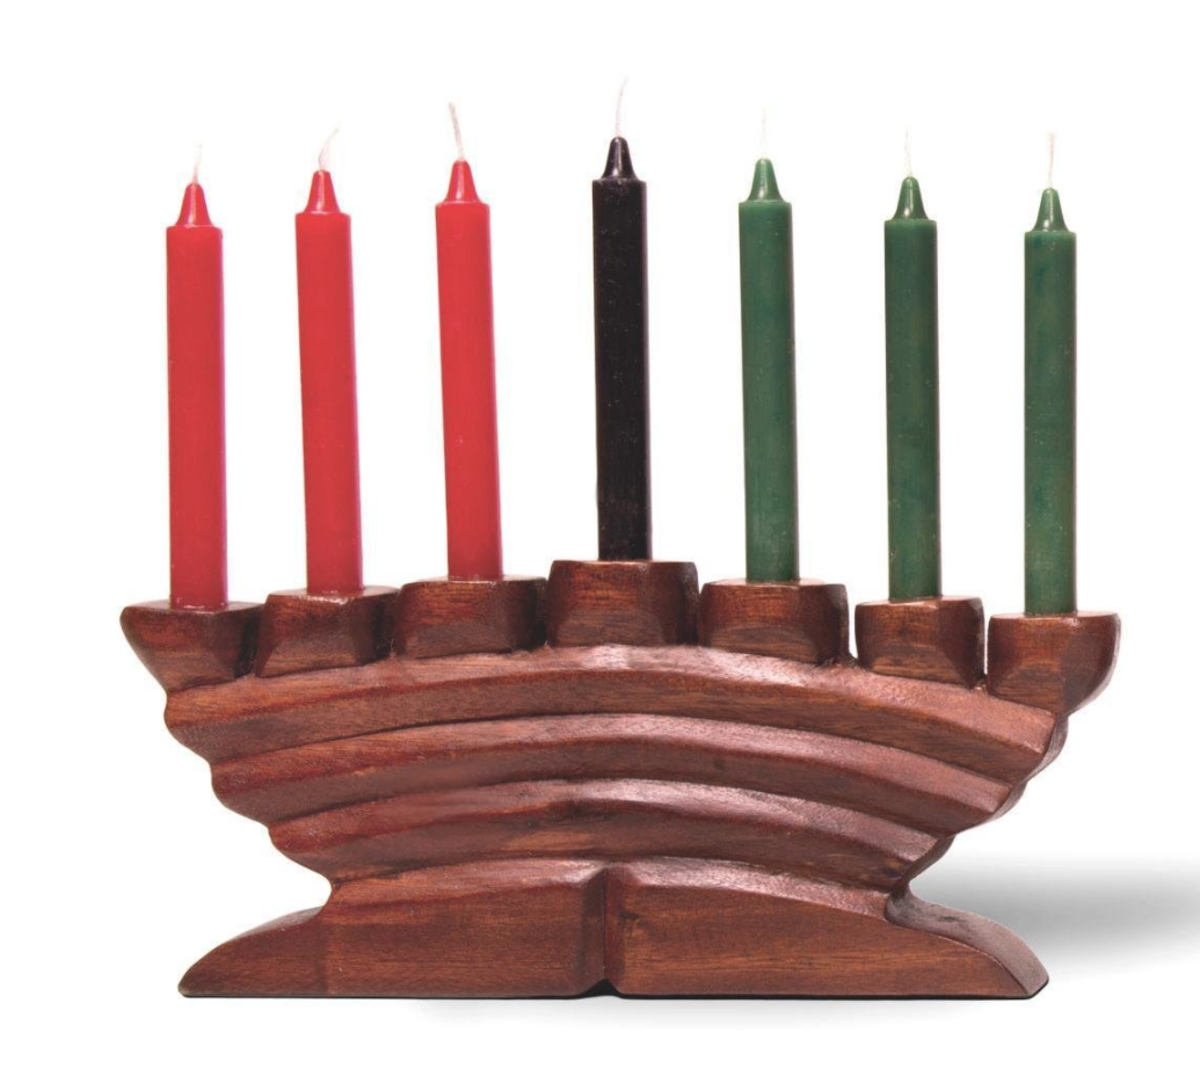 Kwanzaa's most notable symbol is the Kinara (Kee-Nah-rah). The Kinara is a candle holder that symbolizes the ancestral roots of the African continent.